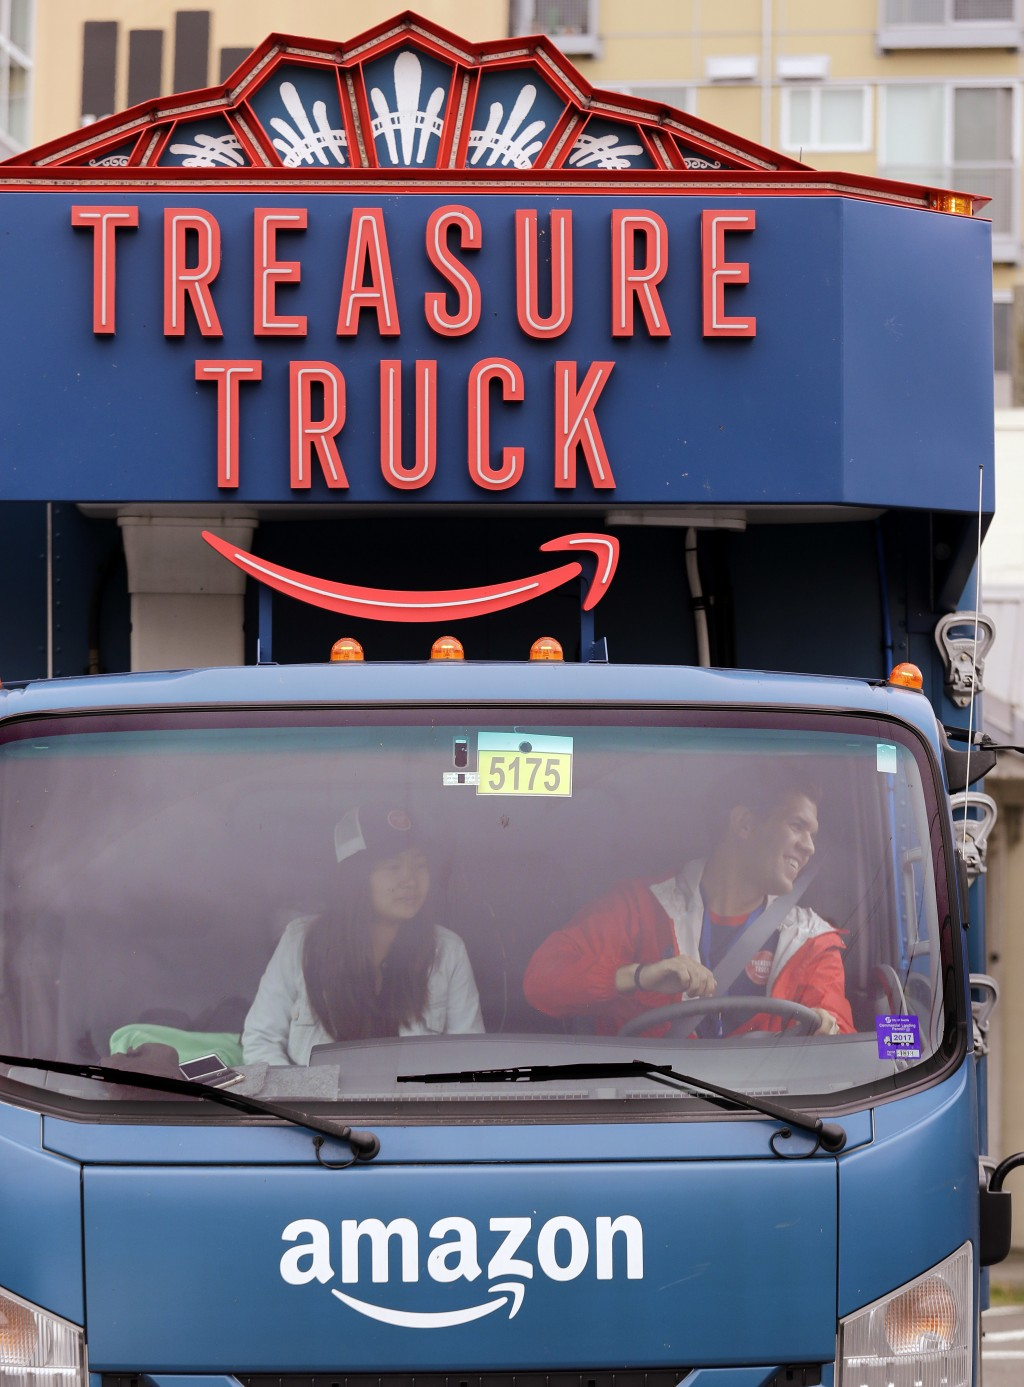 In this May 24, 2018, photo Amazon worker Tony Biallas, right, backs-up an Amazon Treasure Truck into a parking spot as intern Mavis Rong rides shotgu